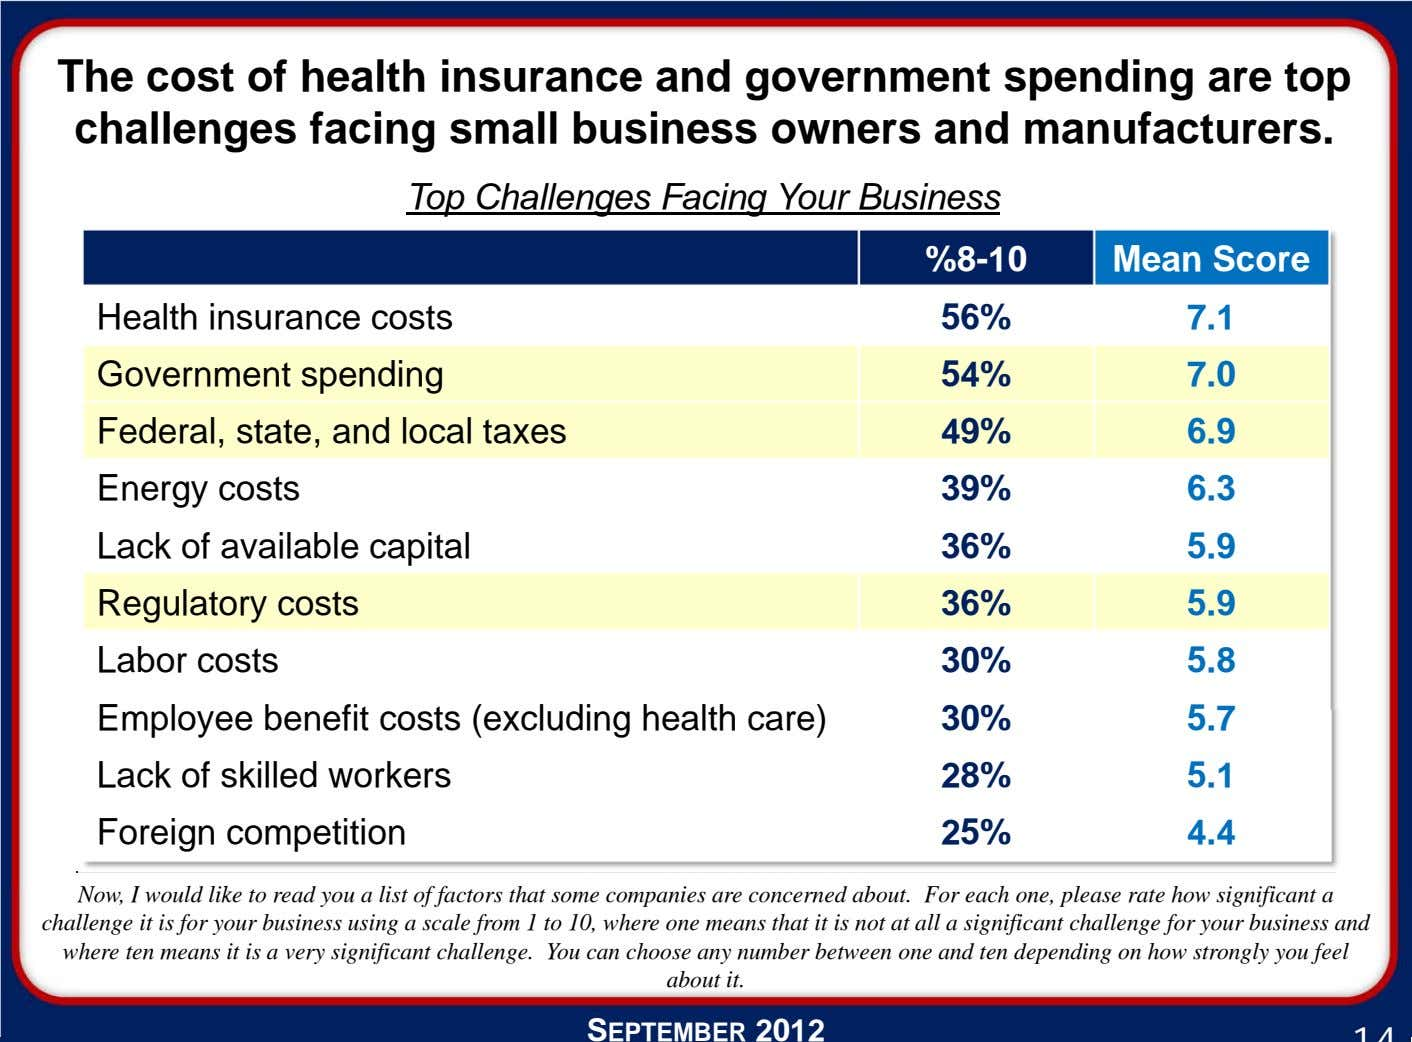 The cost of health insurance and government spending are top challenges facing small business owners